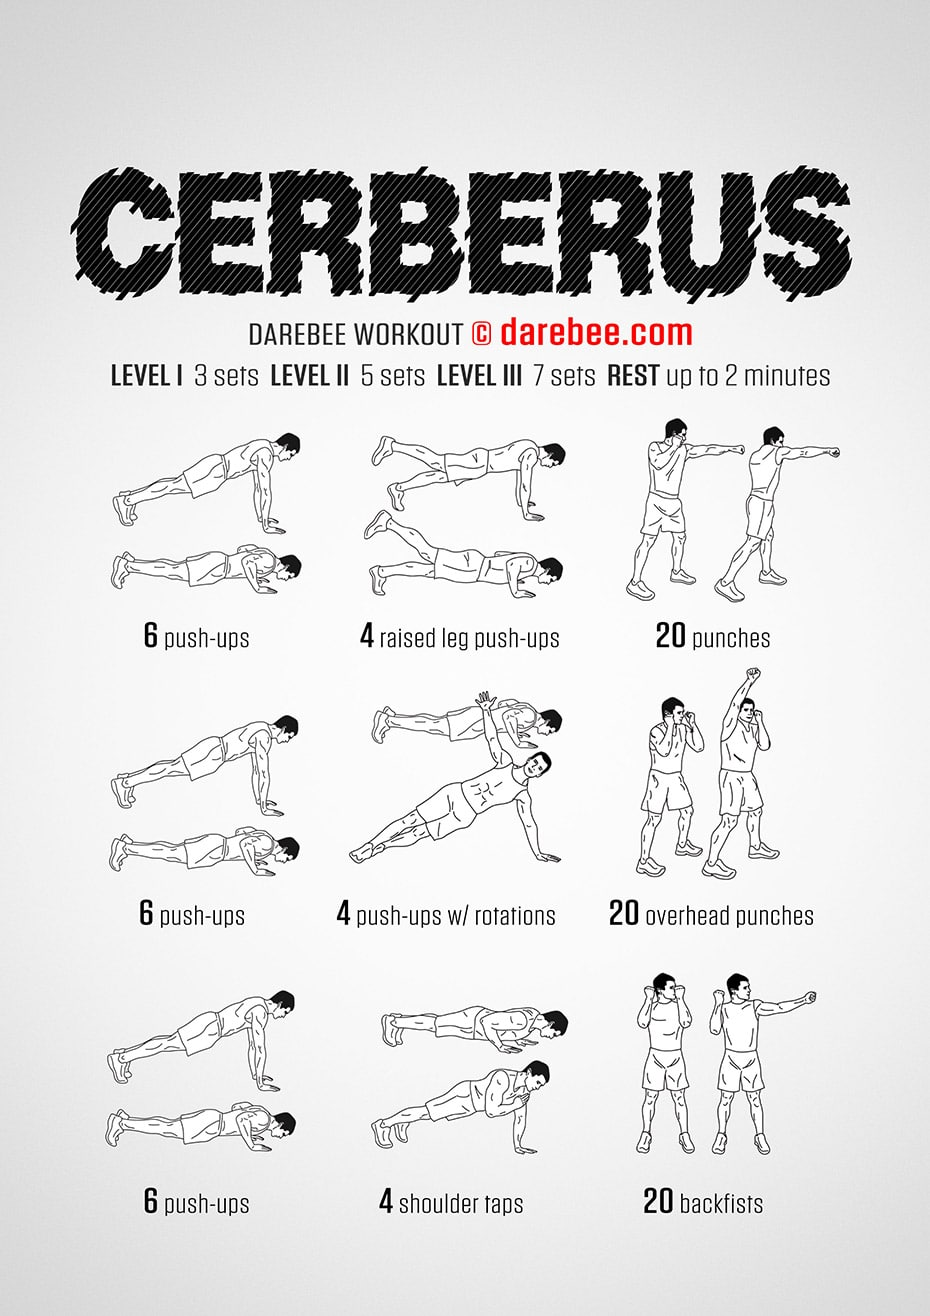 Cerberus Workout by Darebee